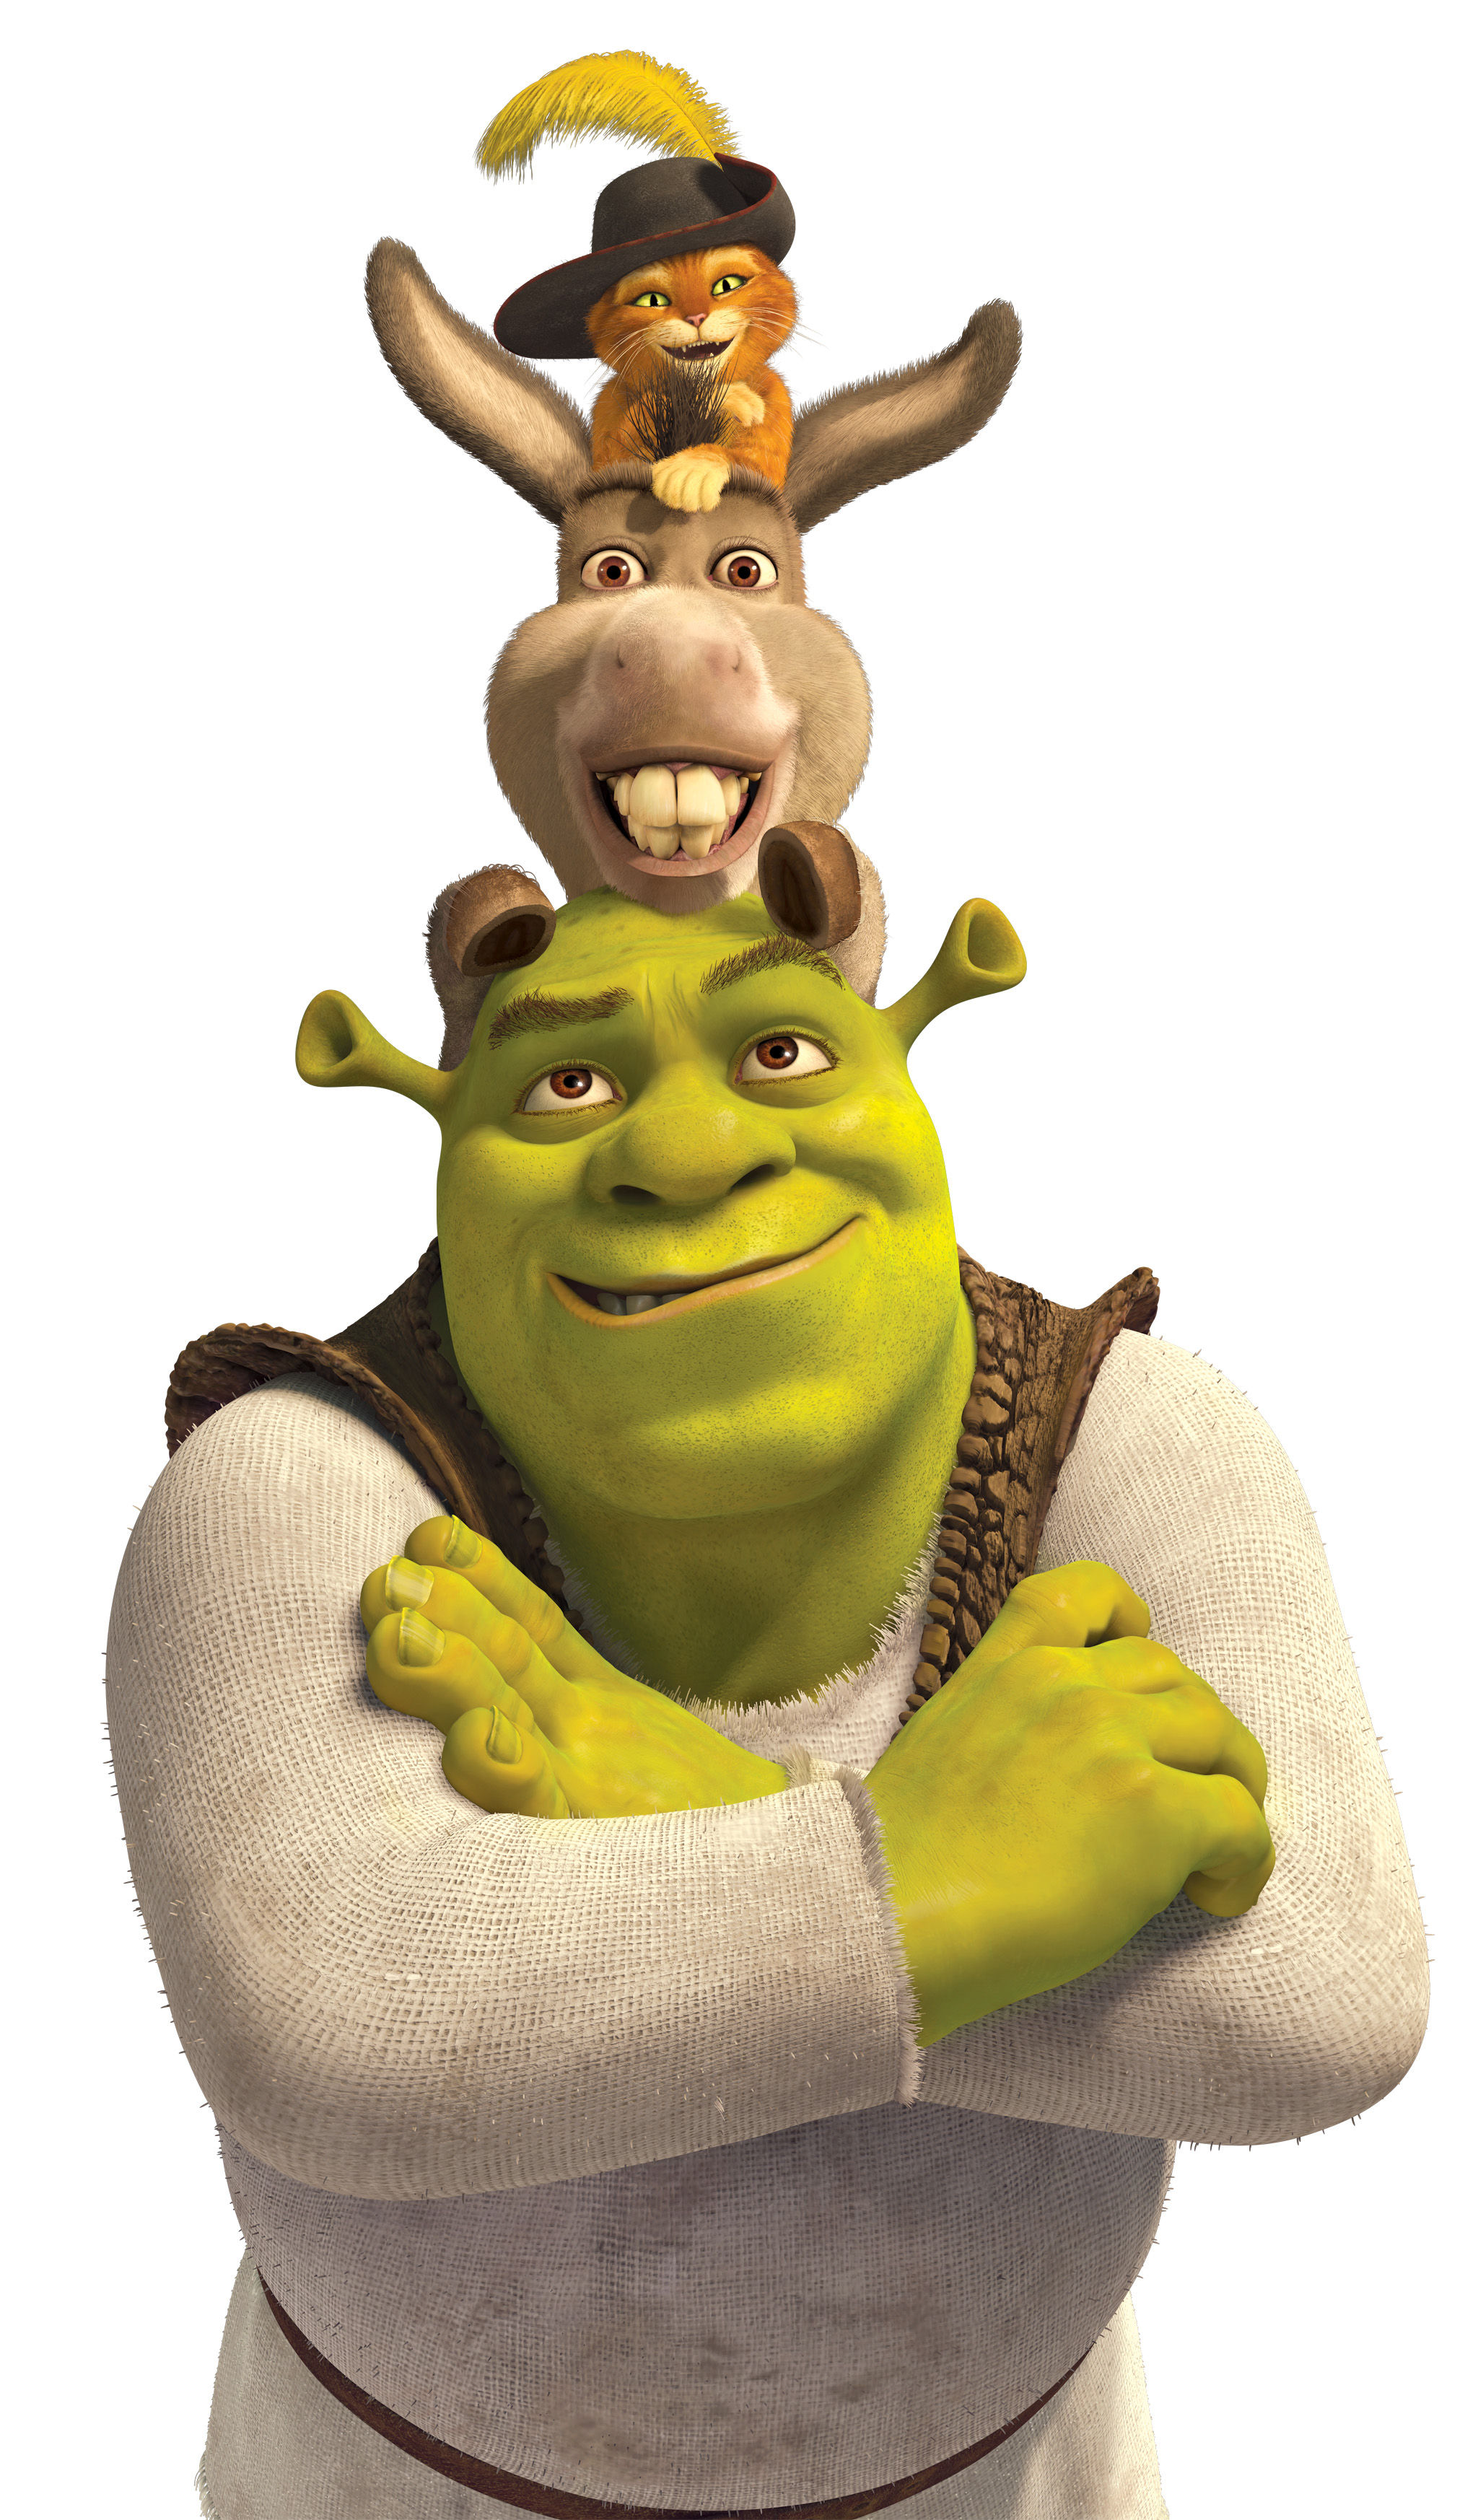 Shrek 2 Cartoon Characters : The rise and fall of dreamworks animation part